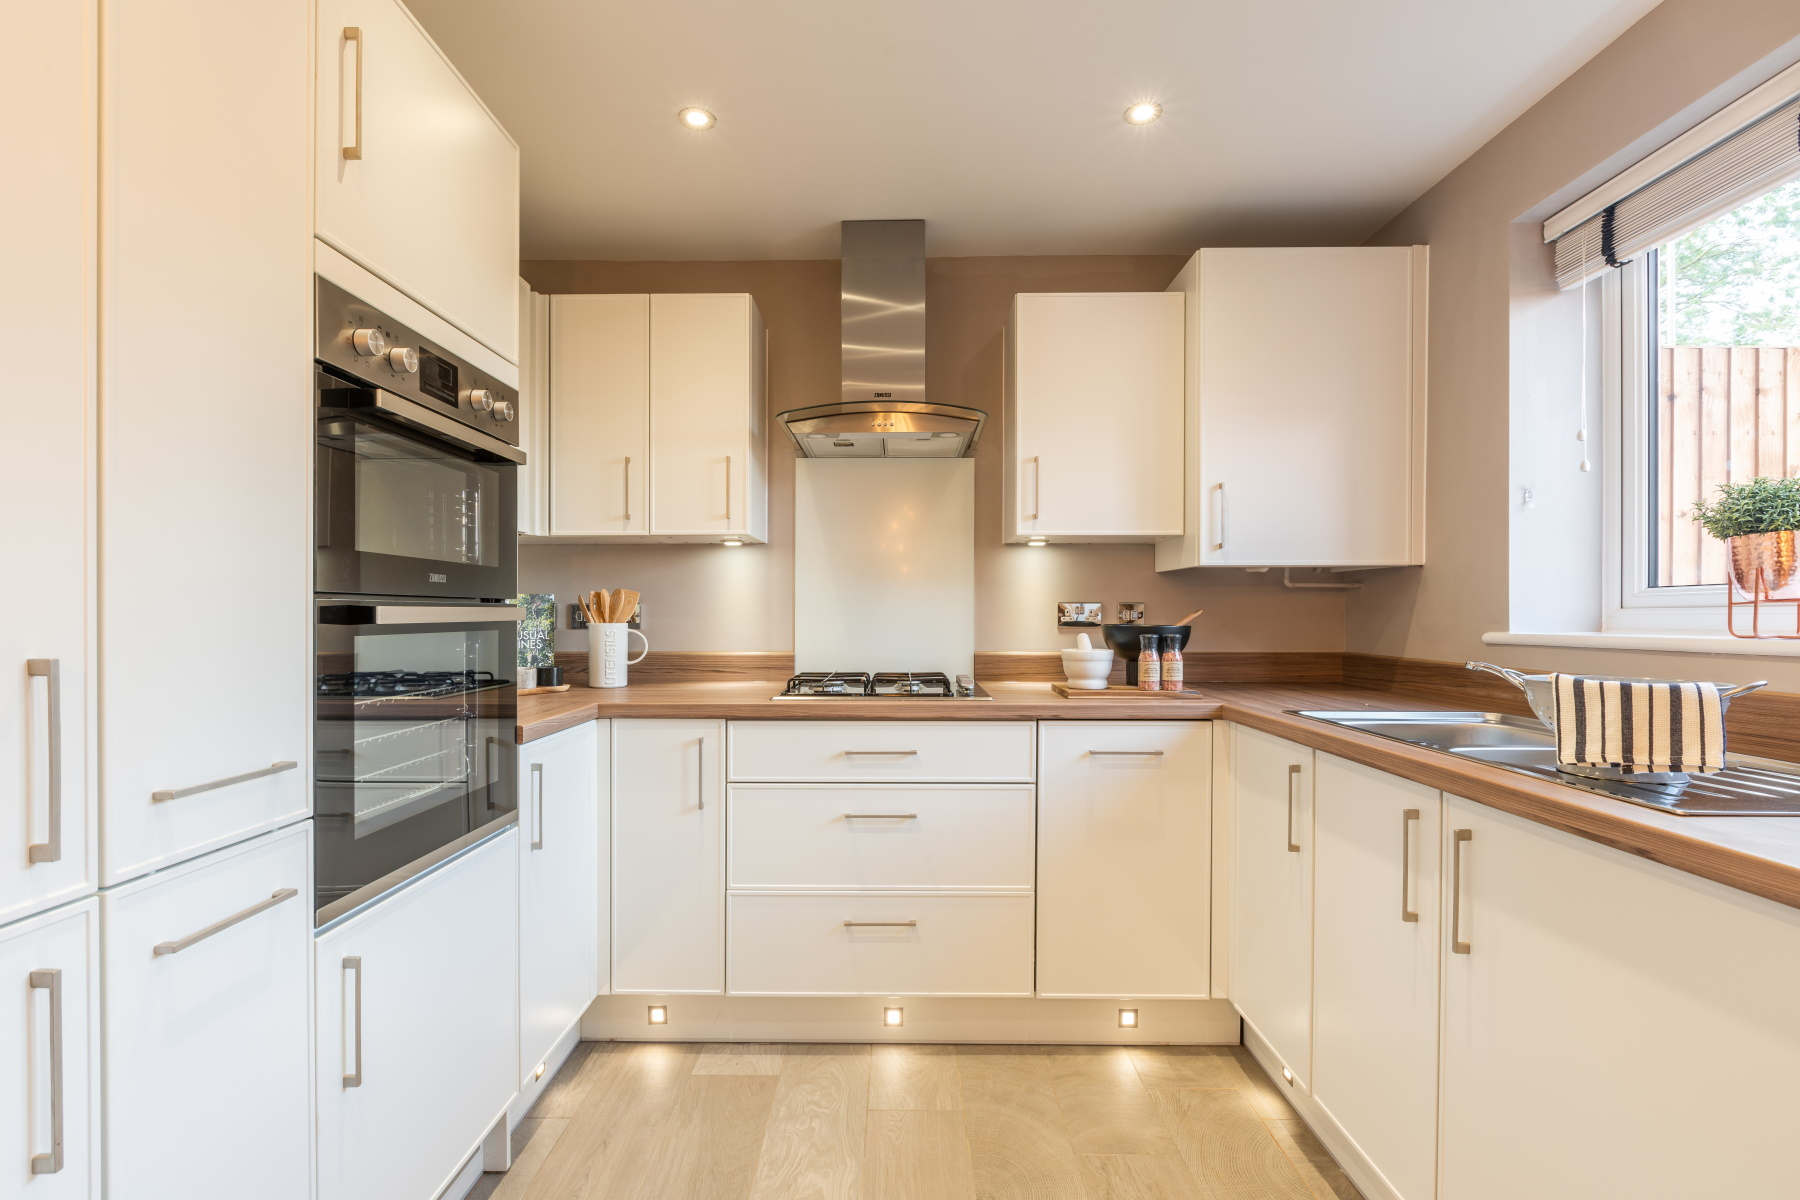 TW Exeter - Cranbrook - Gosford example kitchen